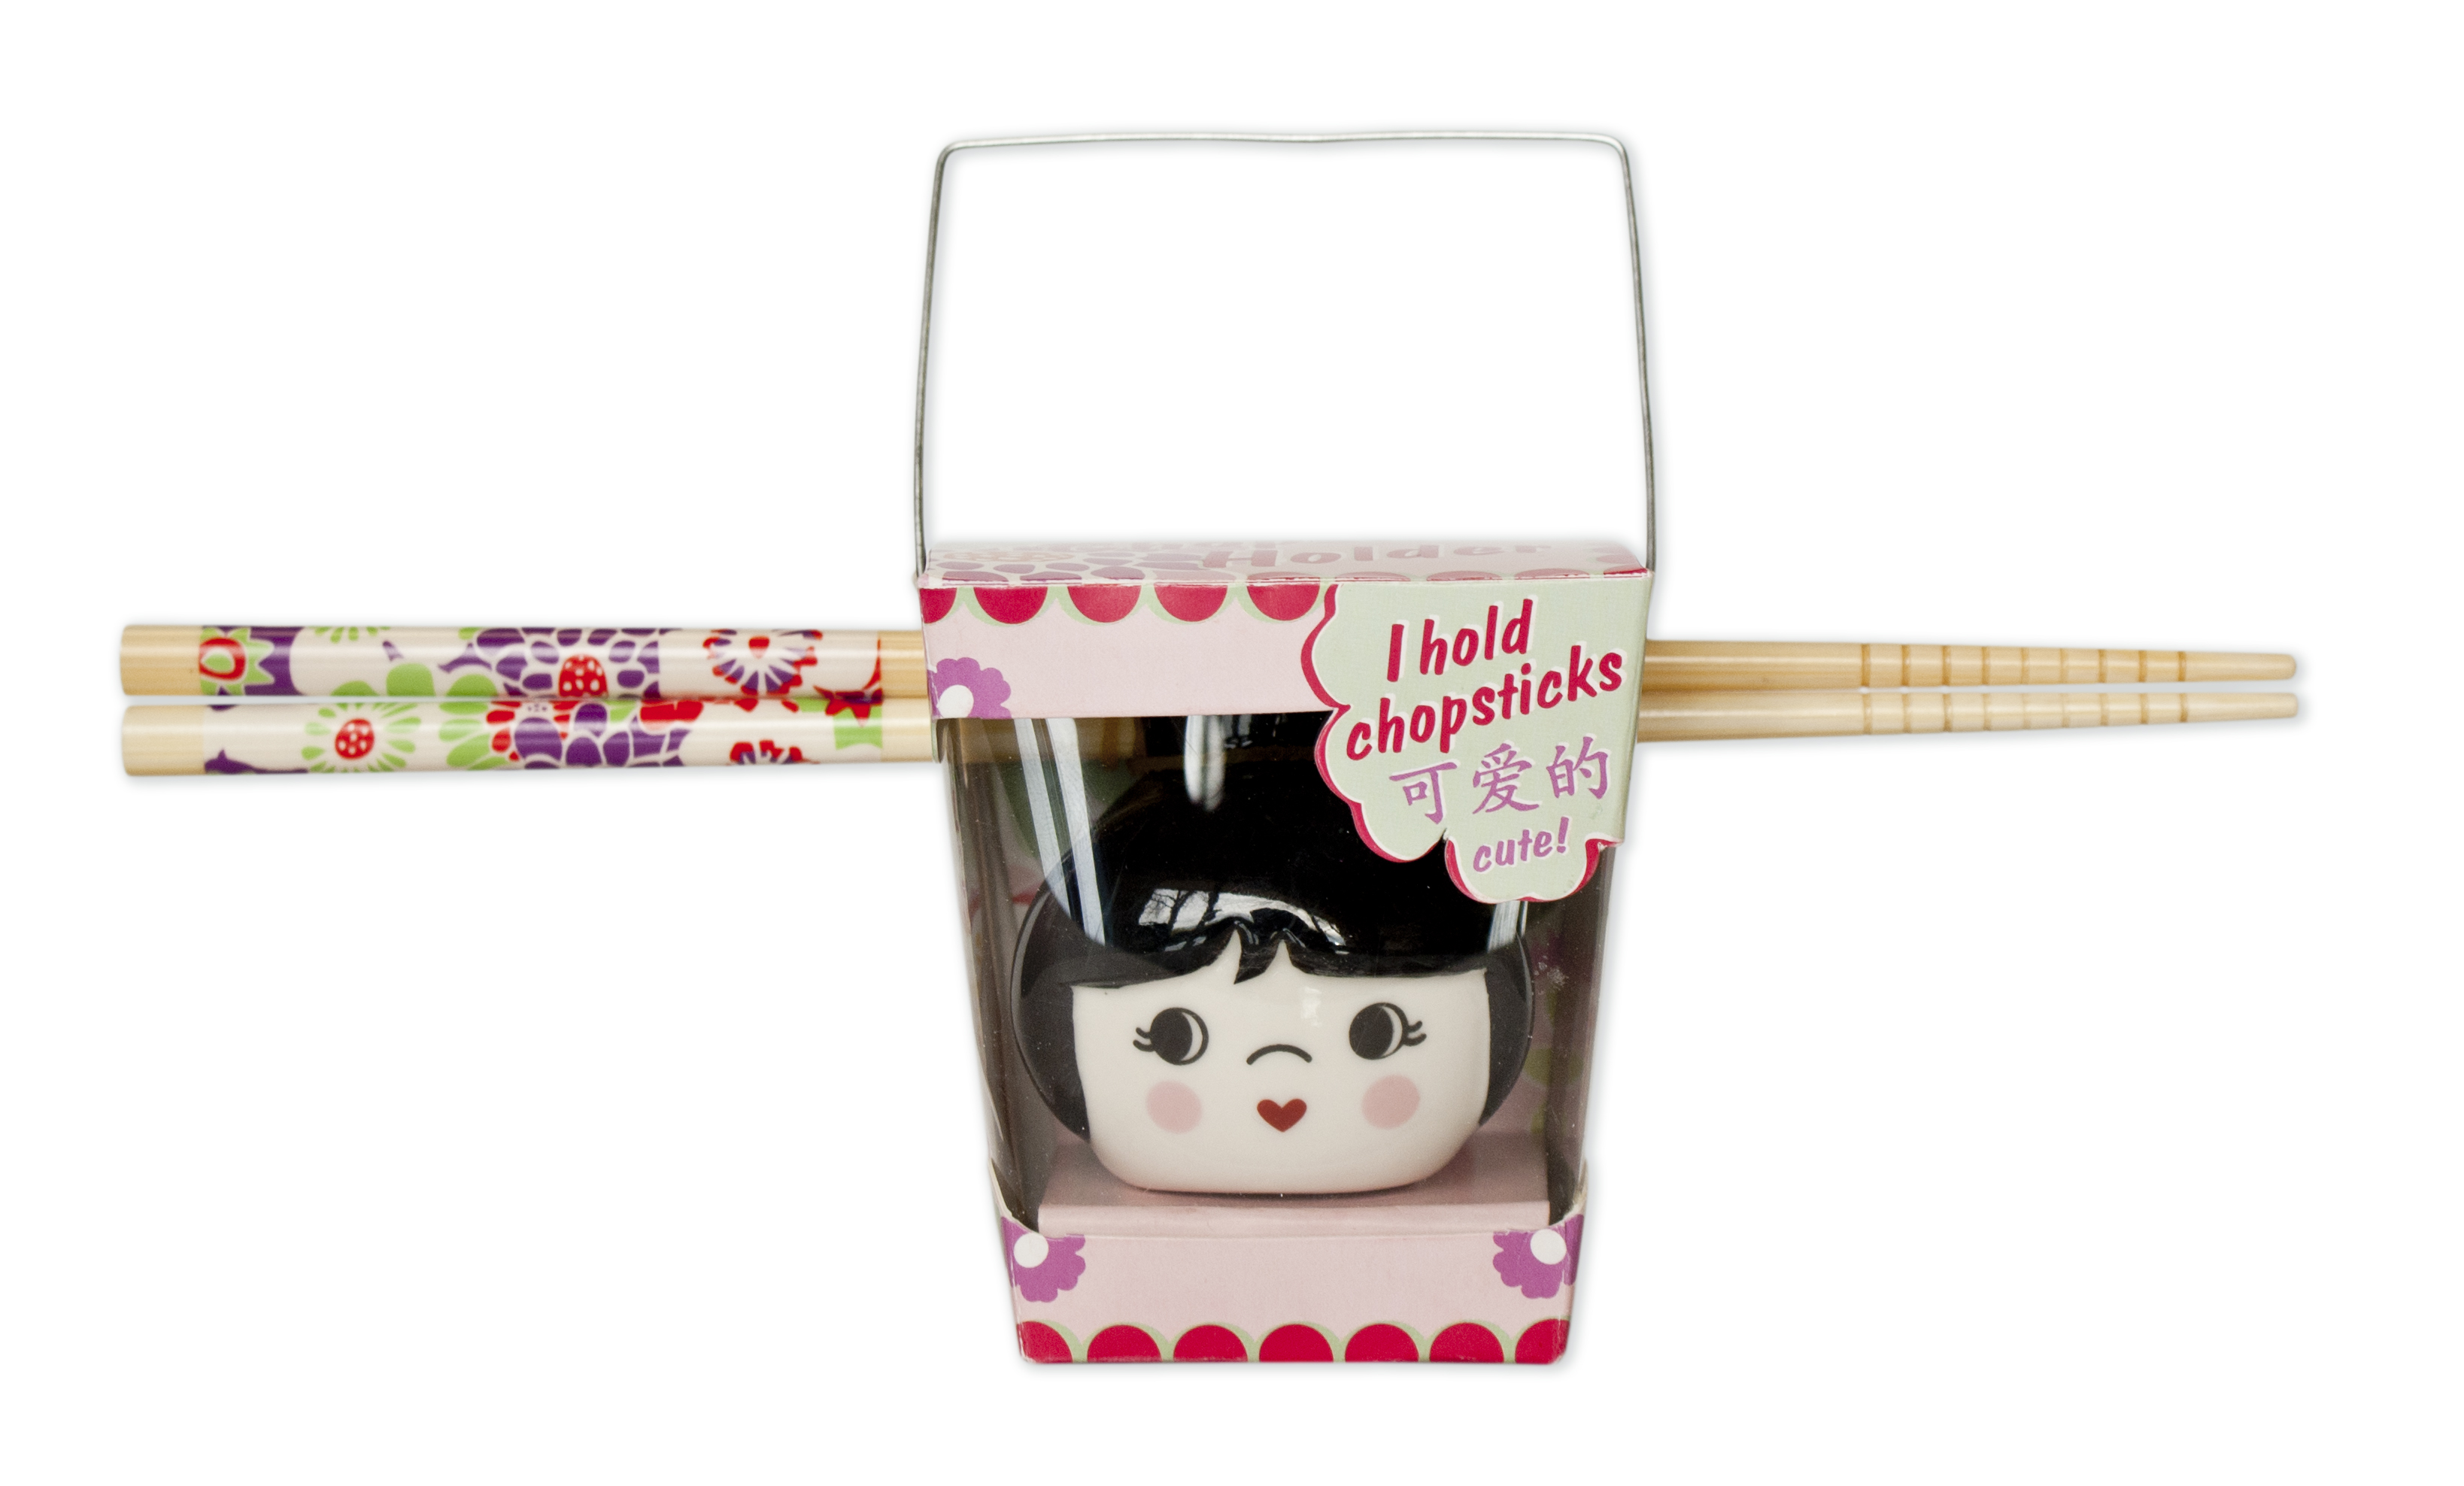 Talisman Designs Cutie Pie Black Chopstick Holder